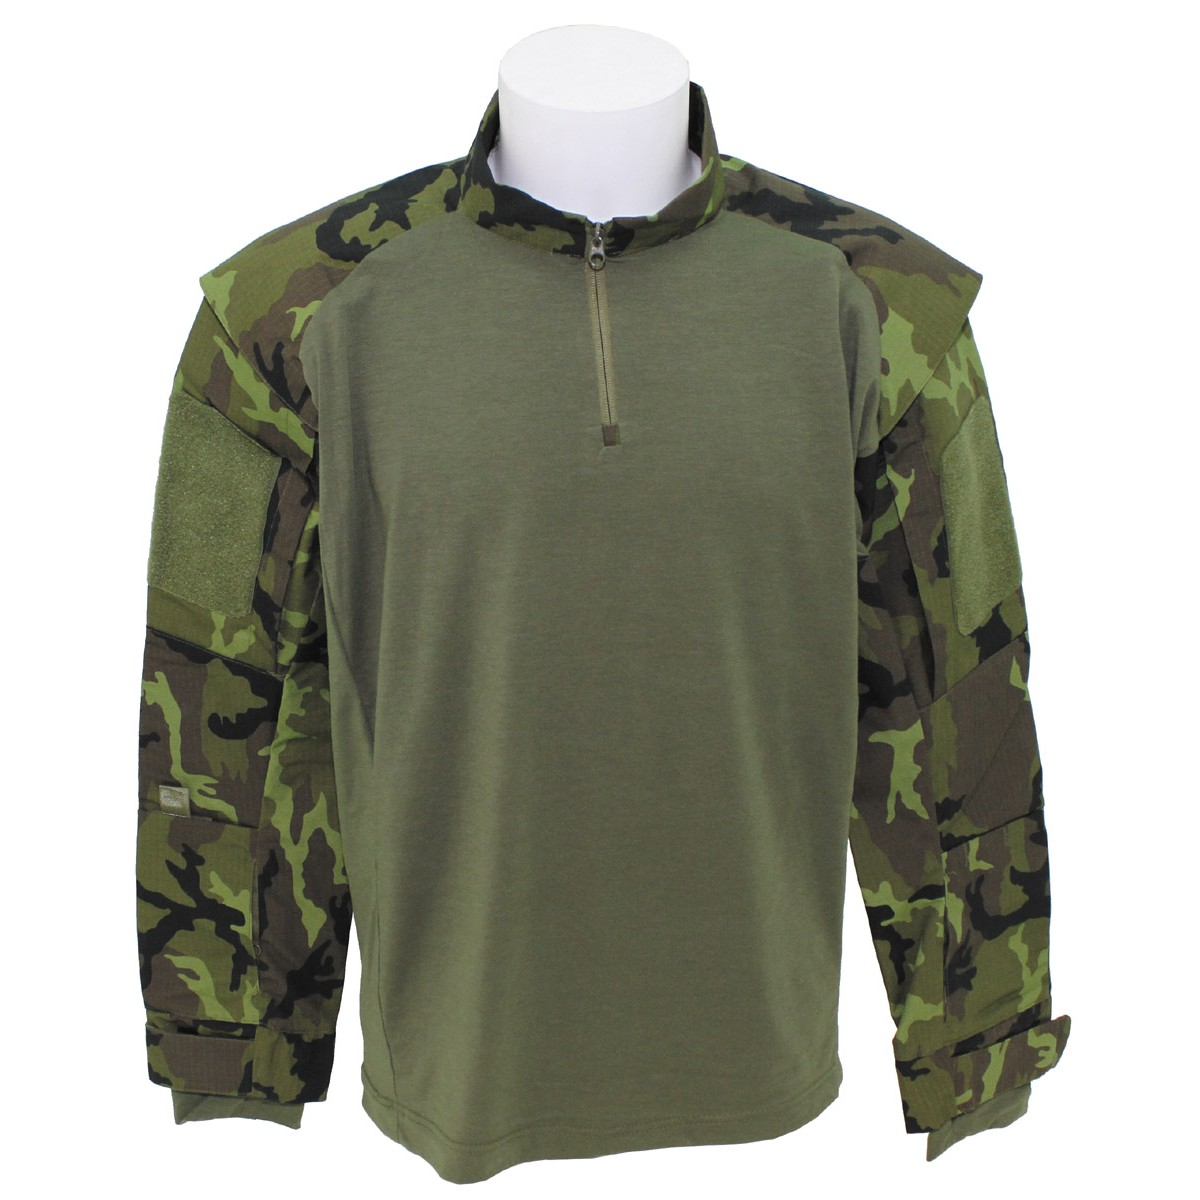 Tactical Military Battle UBACS T-Shirt M95 Czech Army Camo